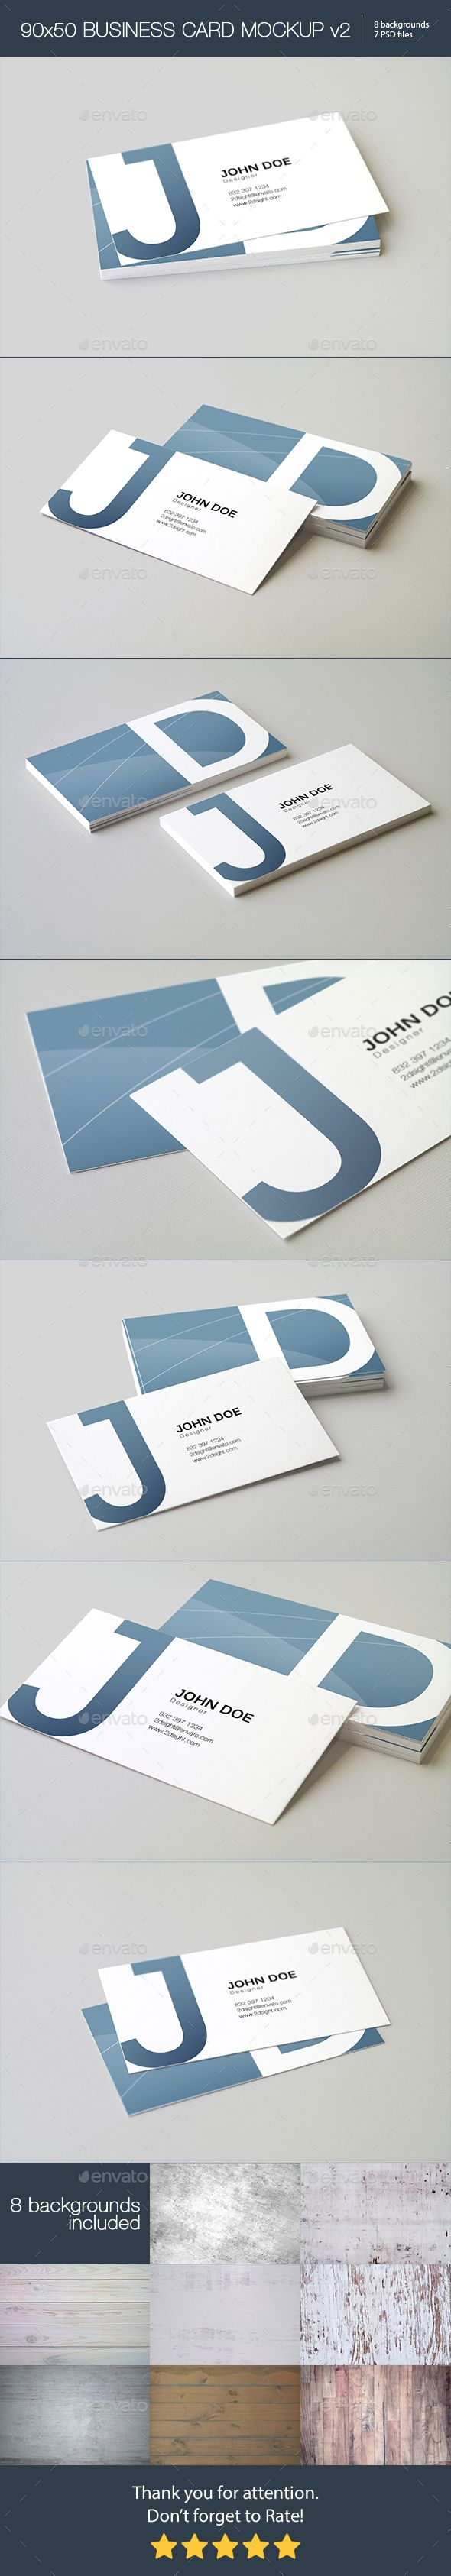 90x50 business card mockup reheart